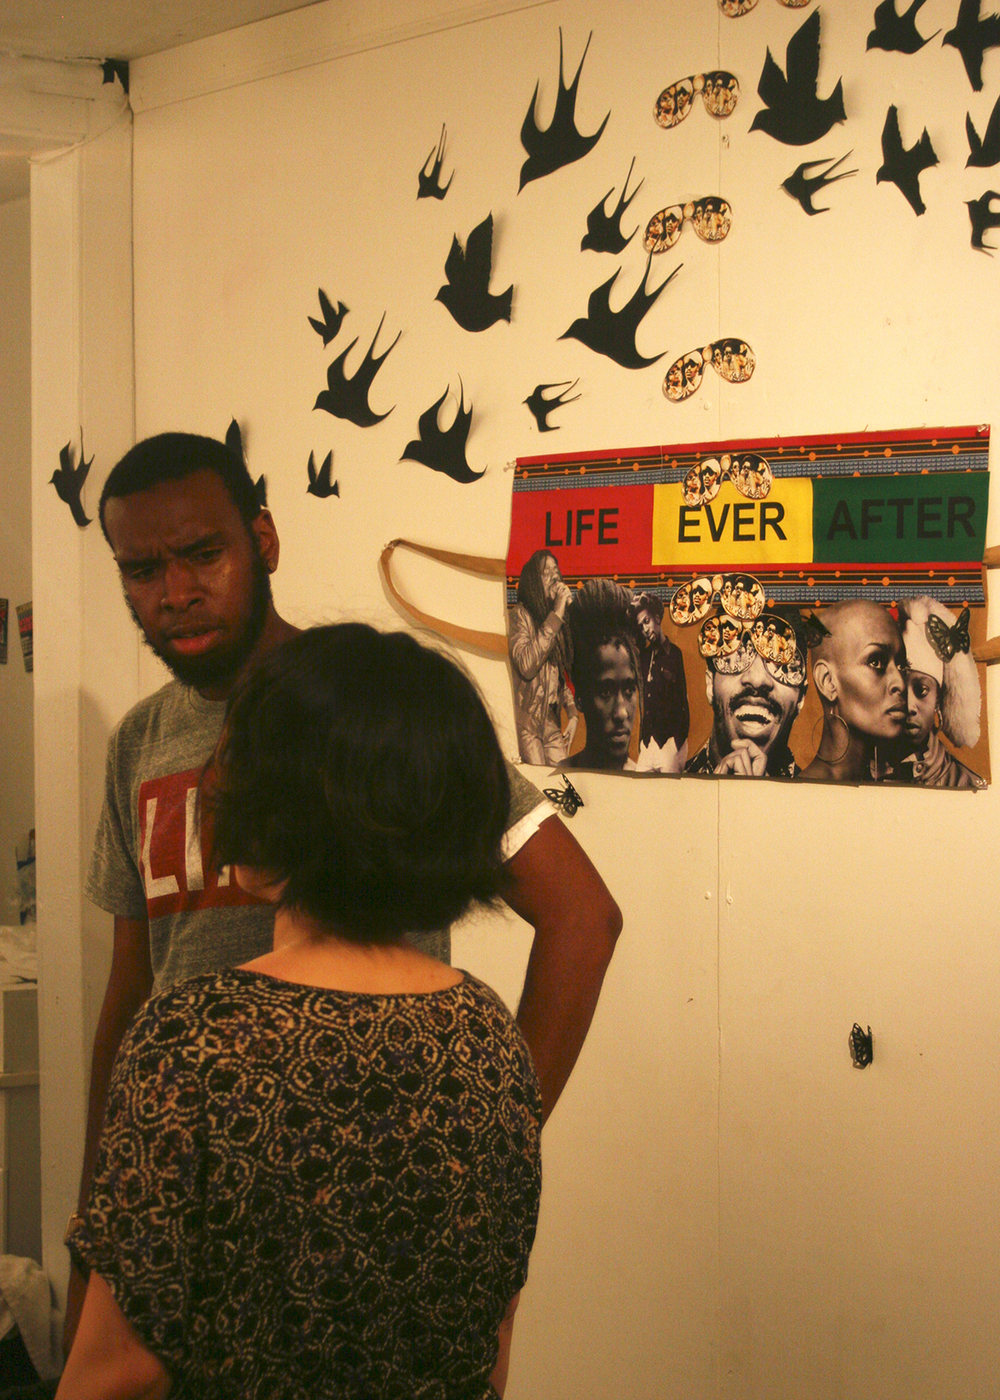 Life and Death in The Age of Ghost art show, curated by Lateef Dameer at Undercurrent Projects Gallery (recap) Image 7